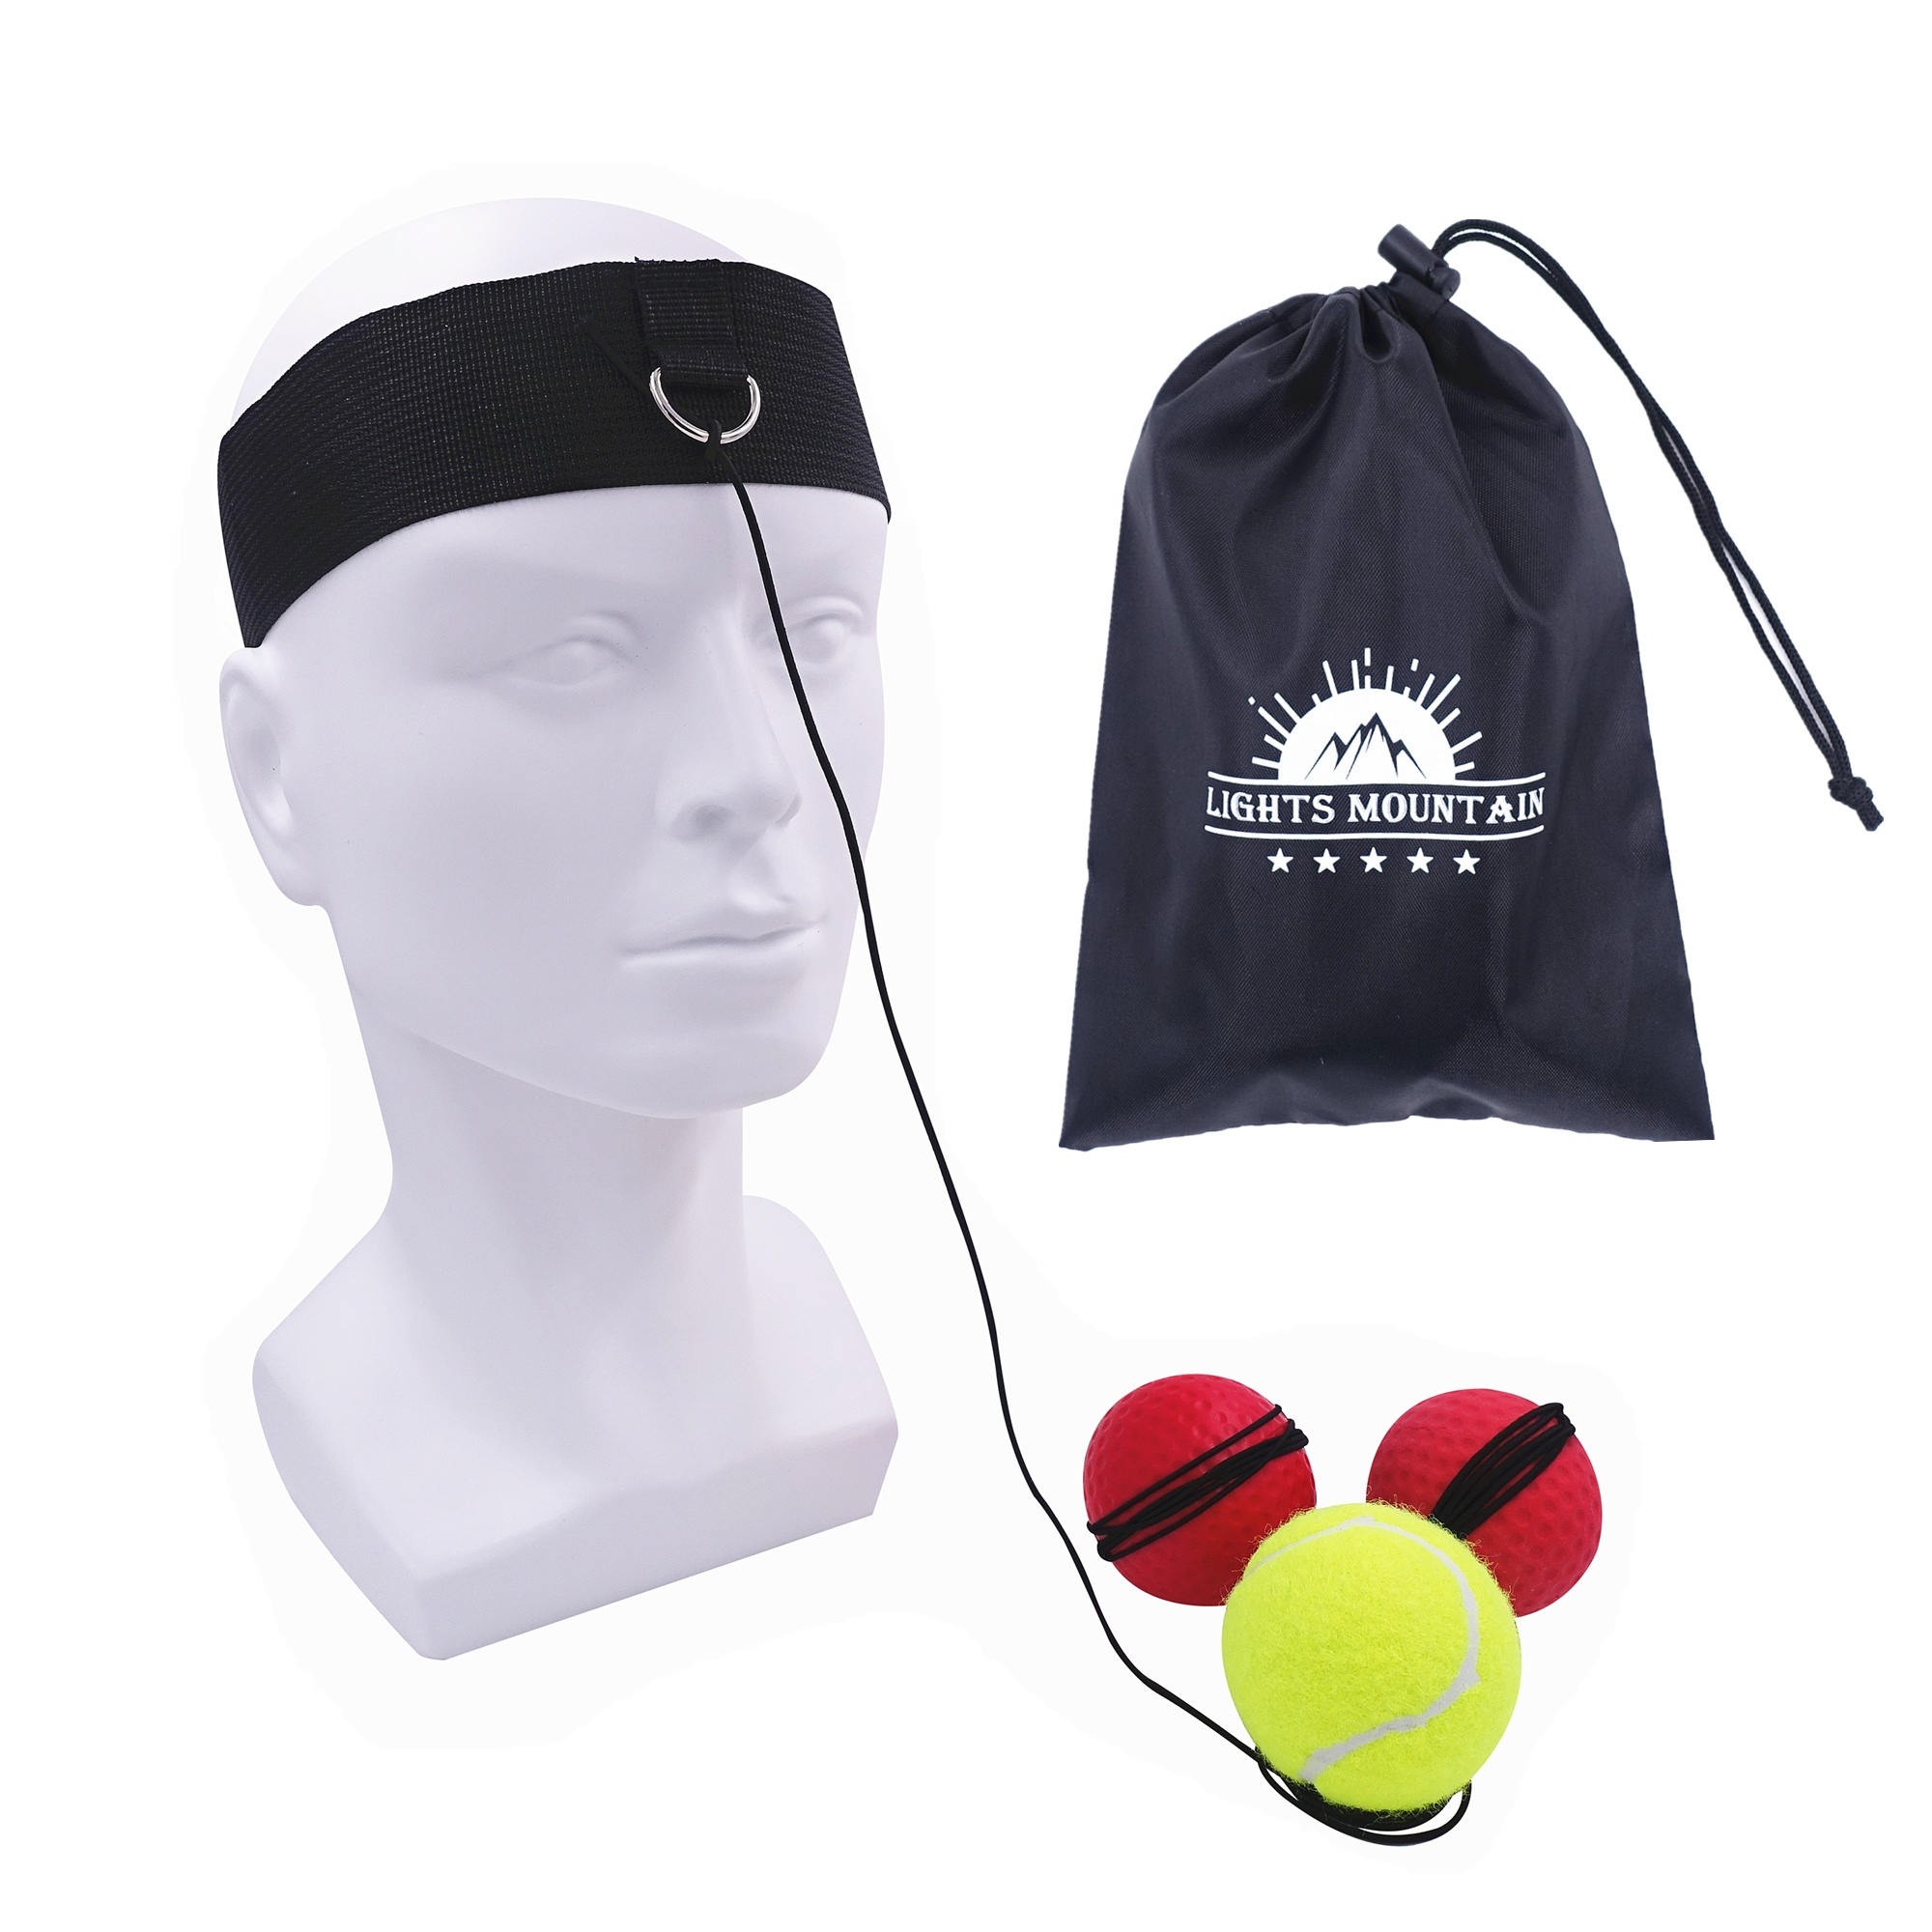 Boxing Reflex Ball Set 3 Difficulty Level Boxing Balls with Adjustable Headband for Punching Speed Reaction Agility Training 9